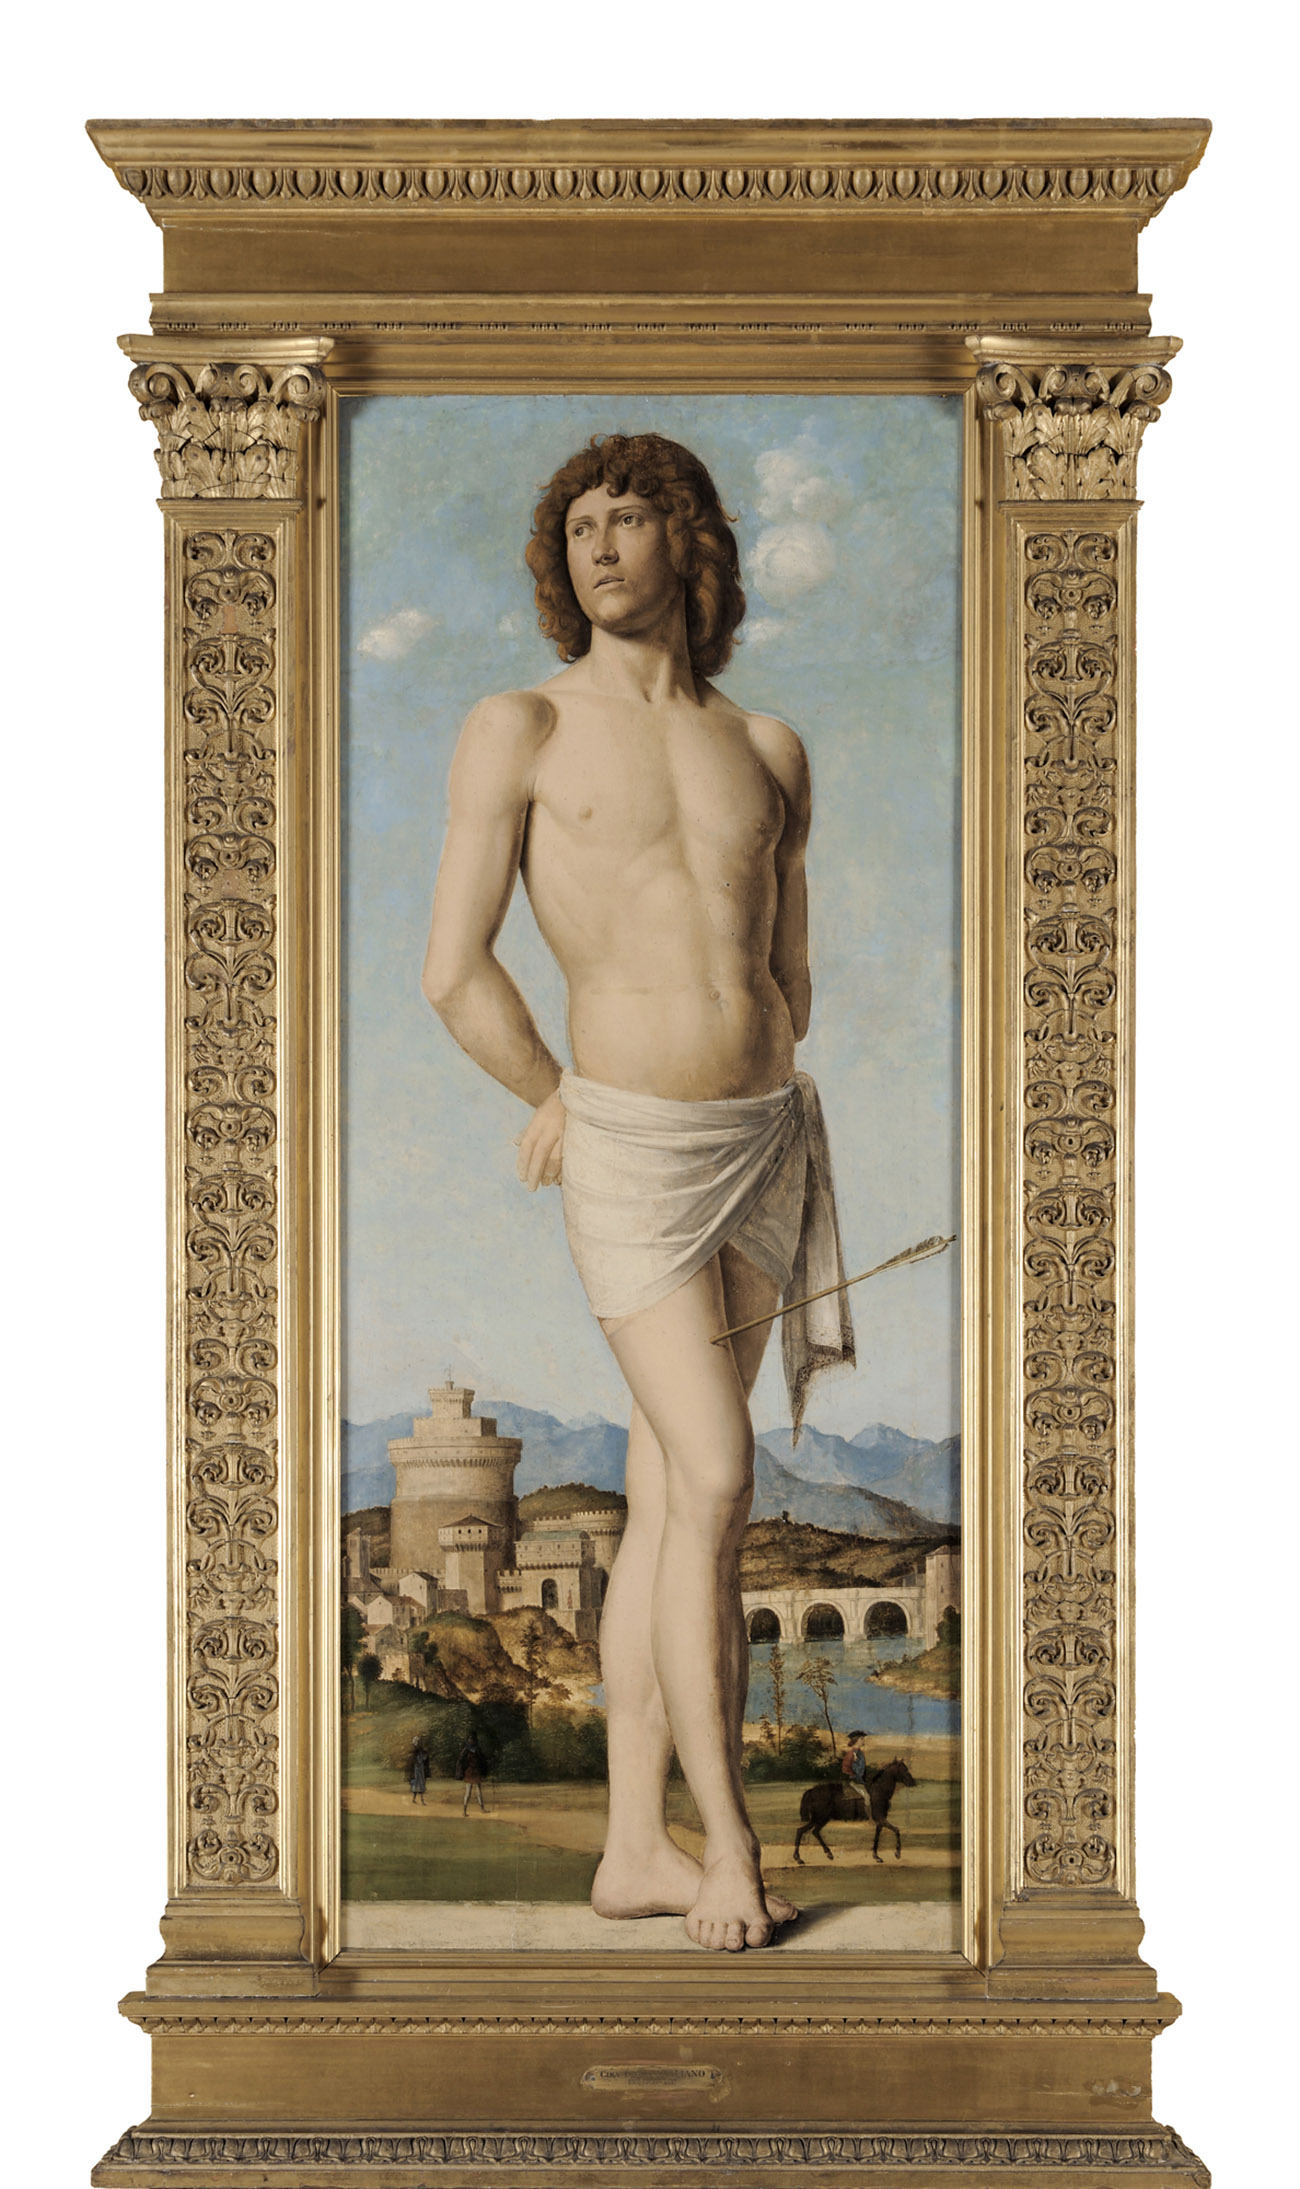 A nude muscular male standing in front of a landscape scene.